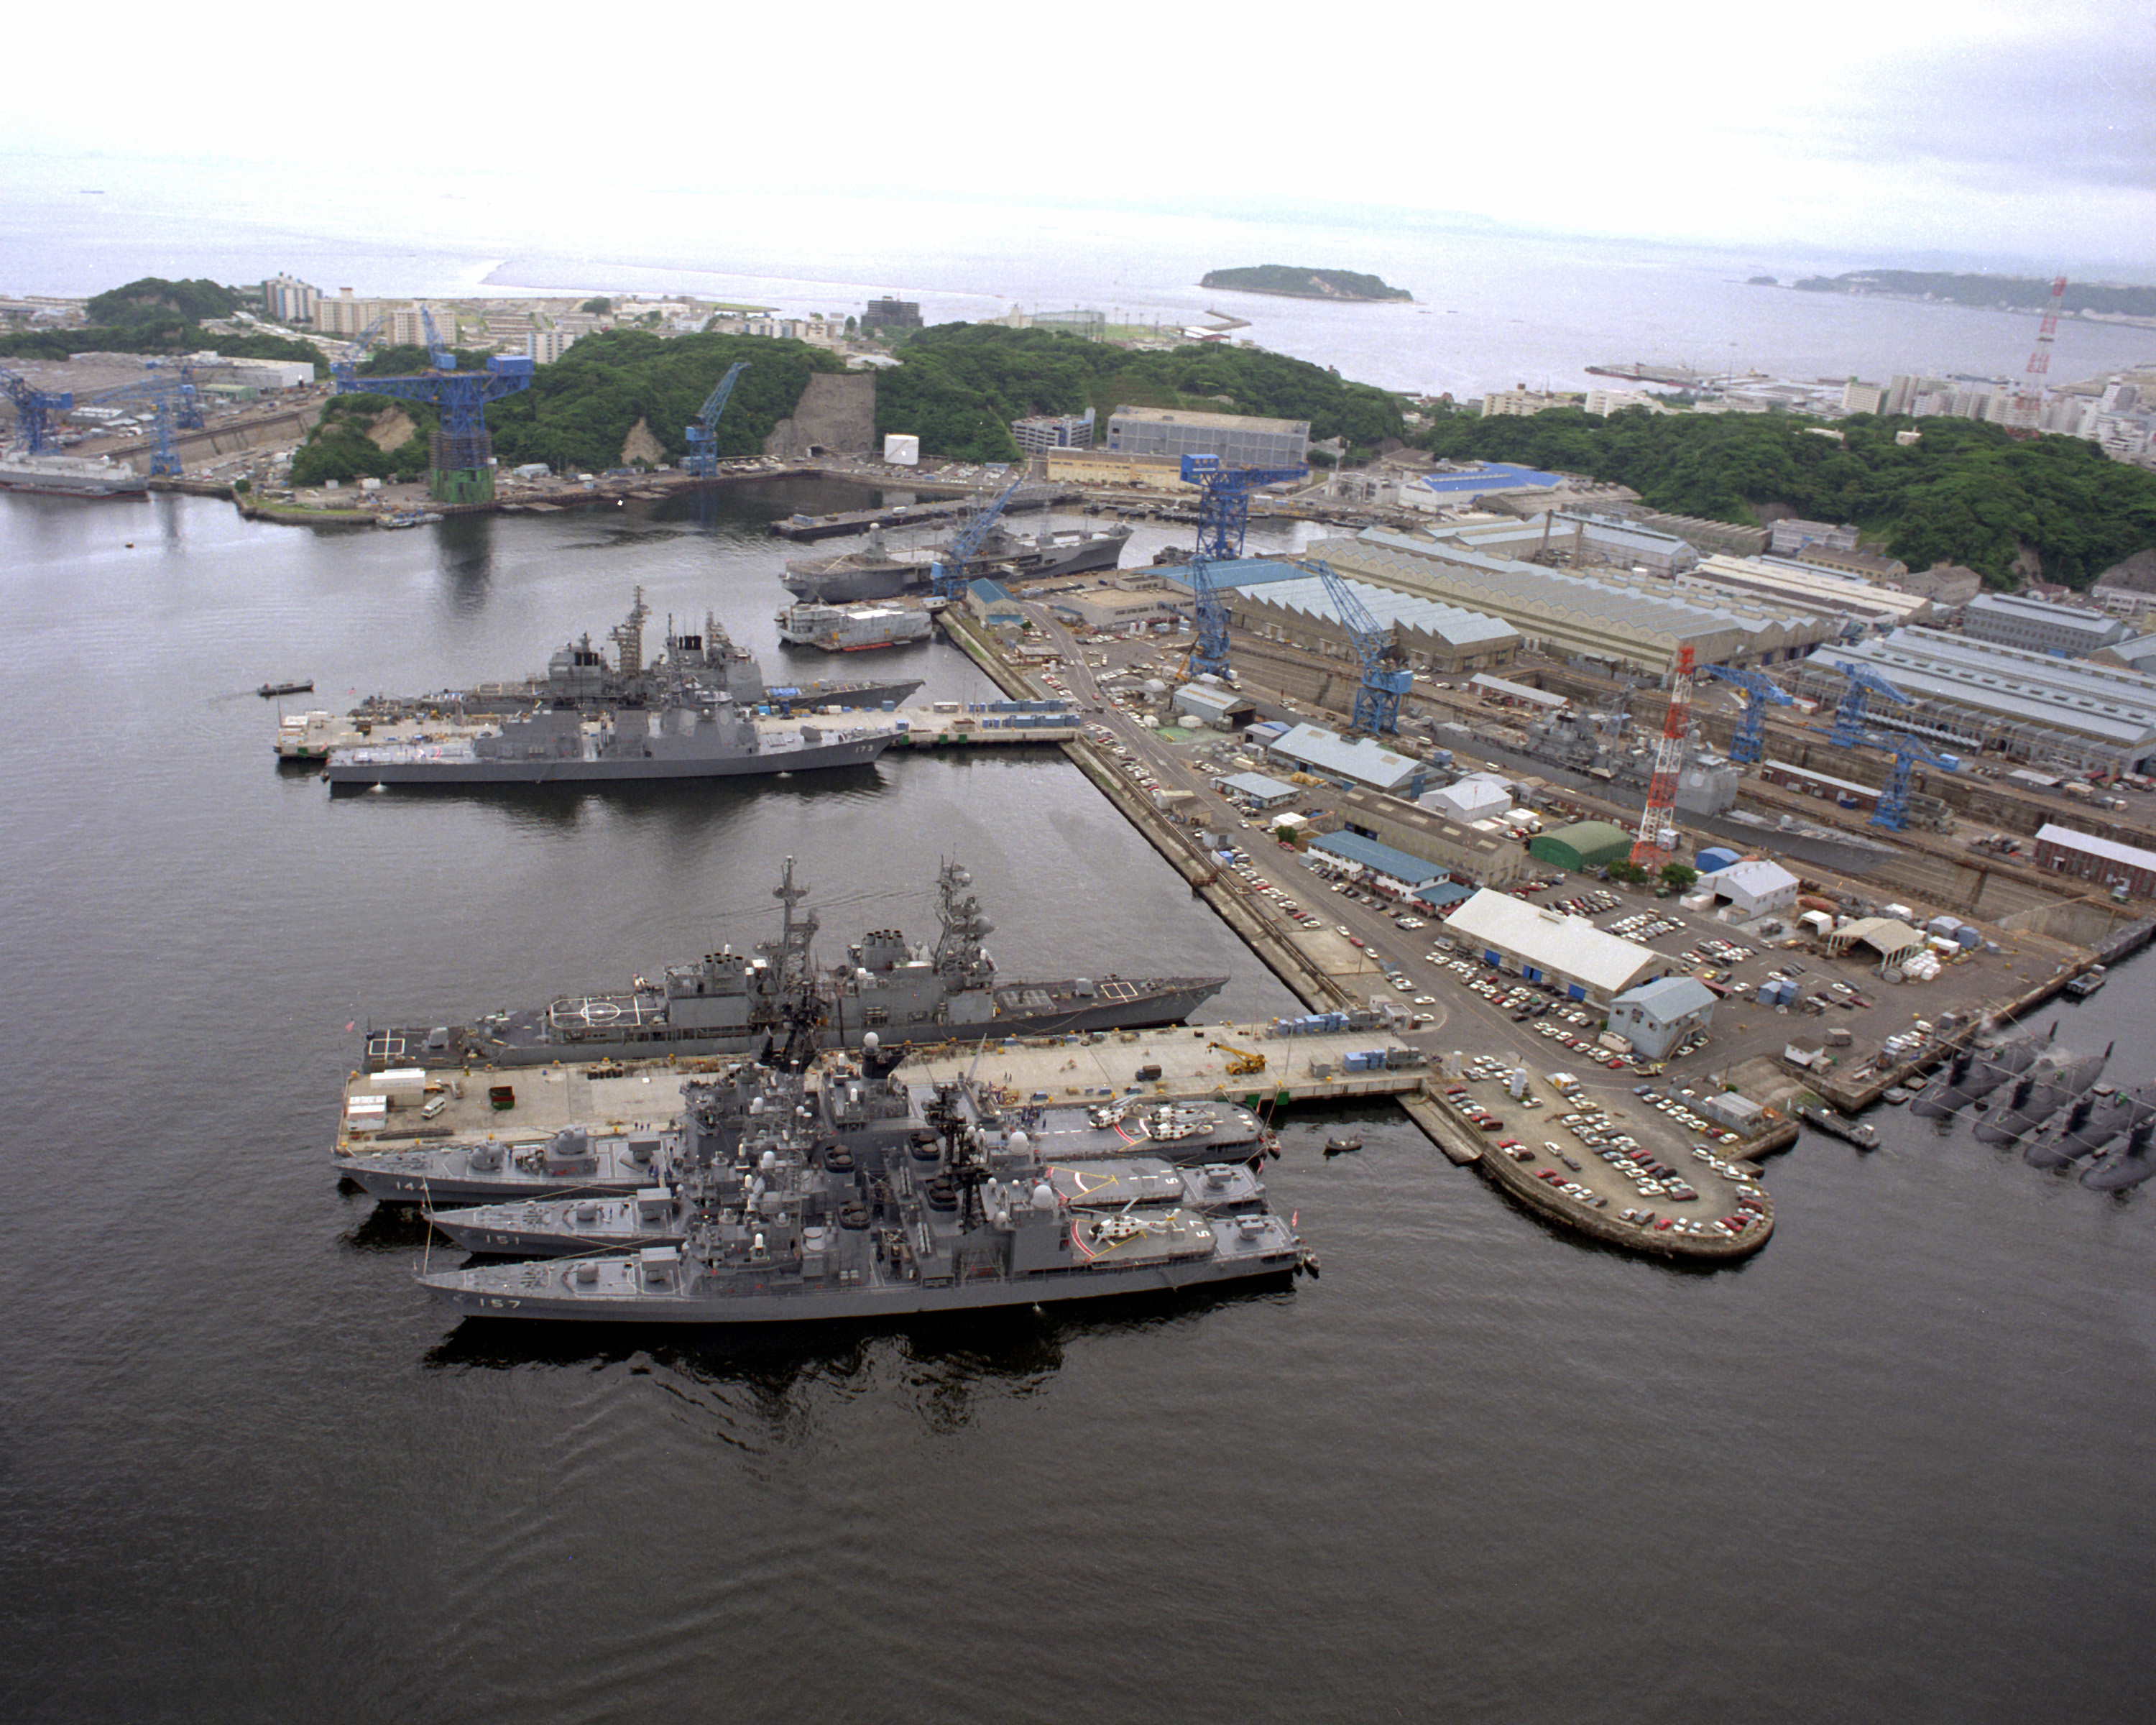 An aerial view of the U.S. Naval Ship Repair Facility at the naval base. The ships tied up at the piers are (b. to t) the Japanese Maritime Self-Defense Force destroyers SAWAGIRI (DD-157), ASAGIRI (DD-151), the helicopter carrying destroyer KURAMA (DDH-144), the destroyer USS O'BRIEN (DD-975), the Japanese guided missile destroyer KONGO (DDG-173) and a Ticonderoga class guided missile cruiser. At the top, off to the right, is the amphibious command ship USS BLUE RIDGE (LCC-19). To the far right at Berth 5 is four Japanese Yushio class submarines.